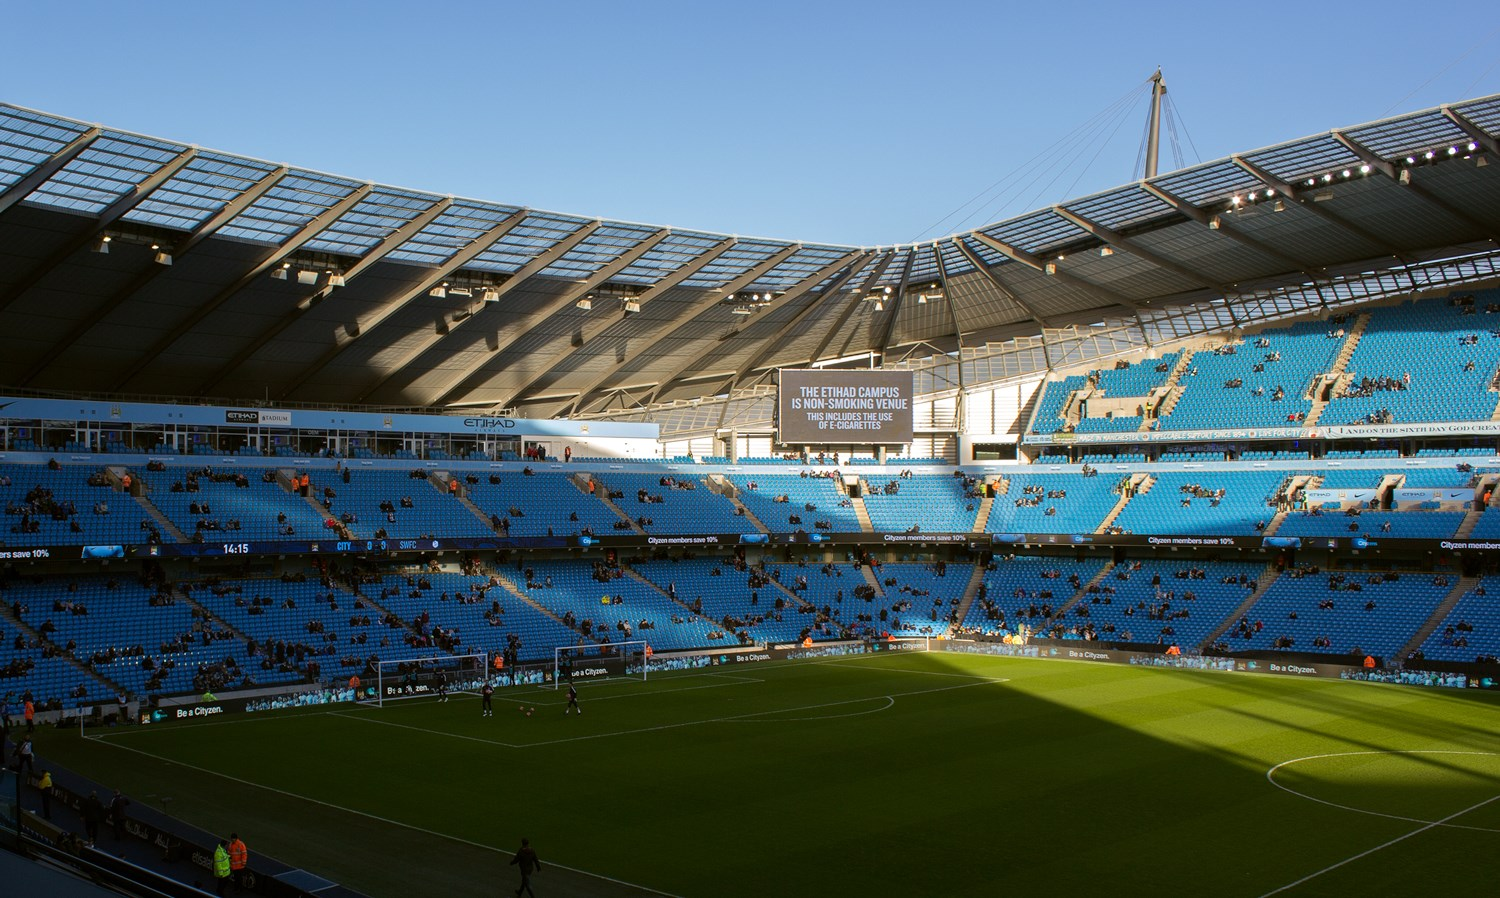 jonathan_palombo_photography_flickr_licensed_for_reuse_under_cc-by-2.0_wikimedia_file_etihad_stadium_16025238054